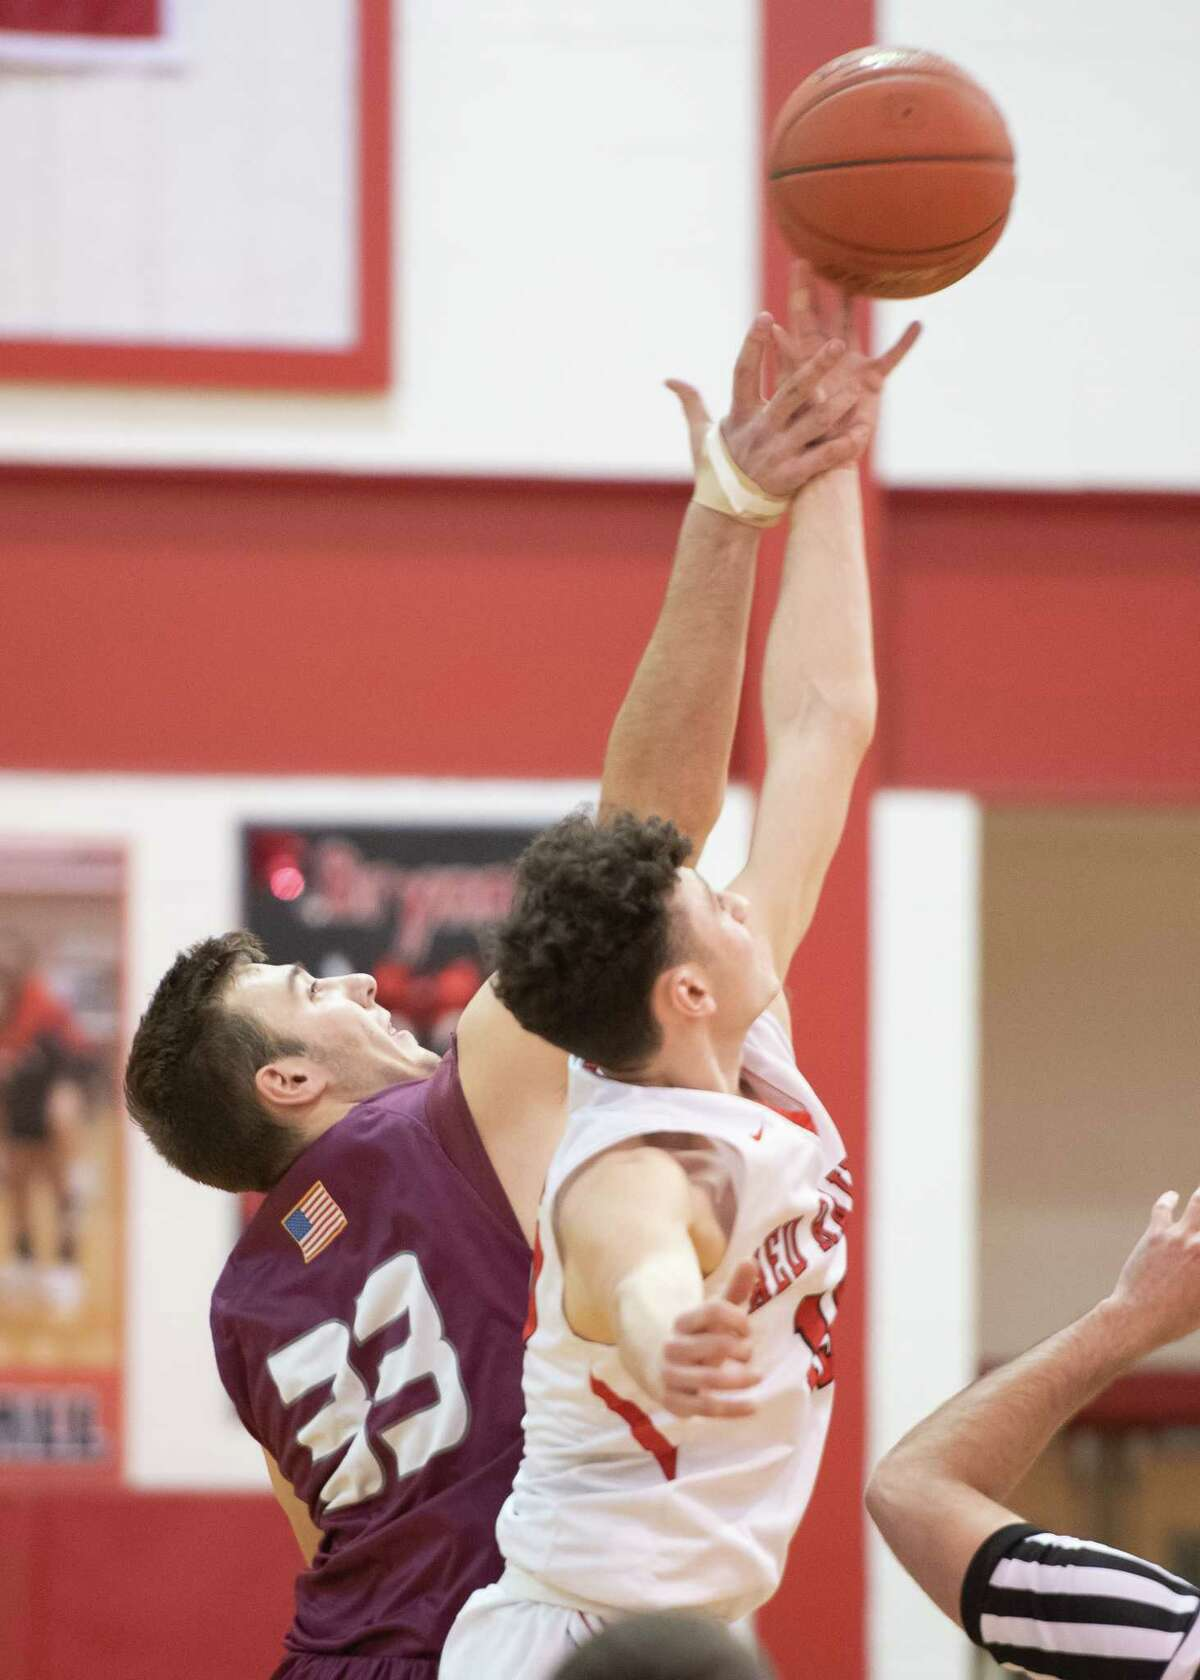 Mechanicville's Tyler Dion wins the tip-off from Stillwater's Brian McNeil during a game on Thursday, Jan. 30, 2020, in Mechanicville, N.Y. (Jenn March, Special to the Times Union )